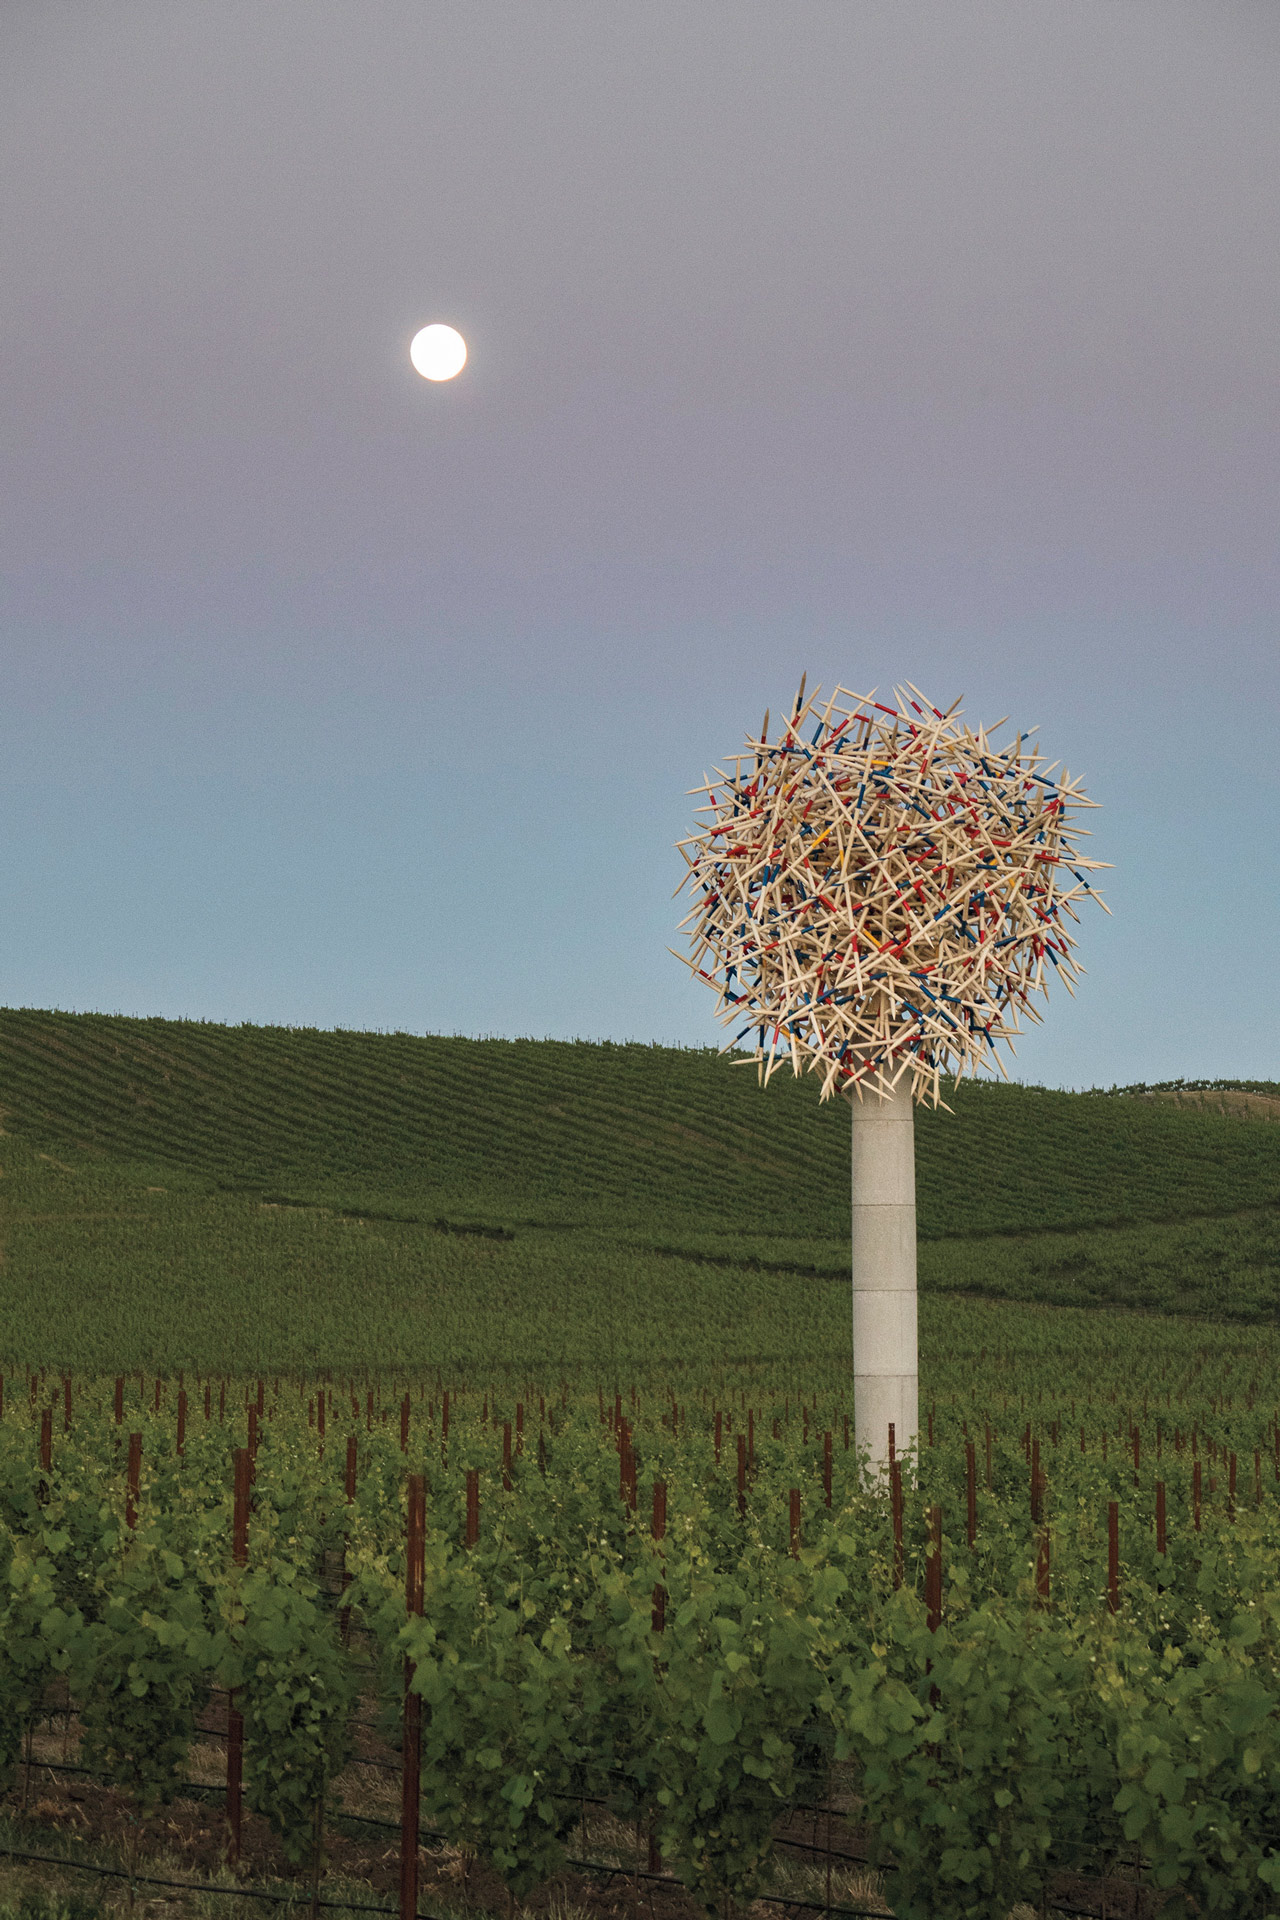 Donum Estate has a sculpture garden filled with work from world-renown artists